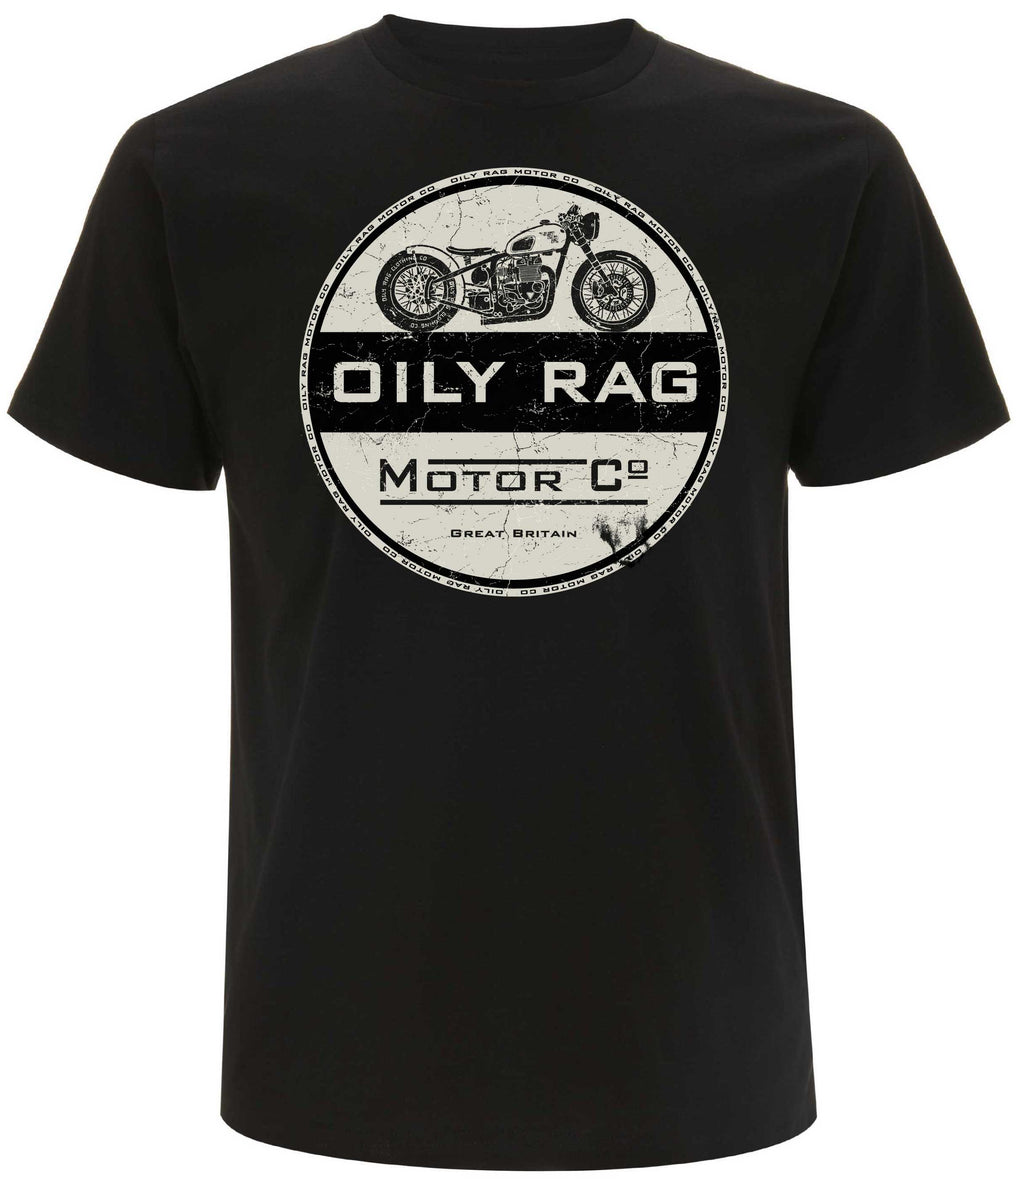 Oily Rag Clothing Motor Co retro style T'Shirt